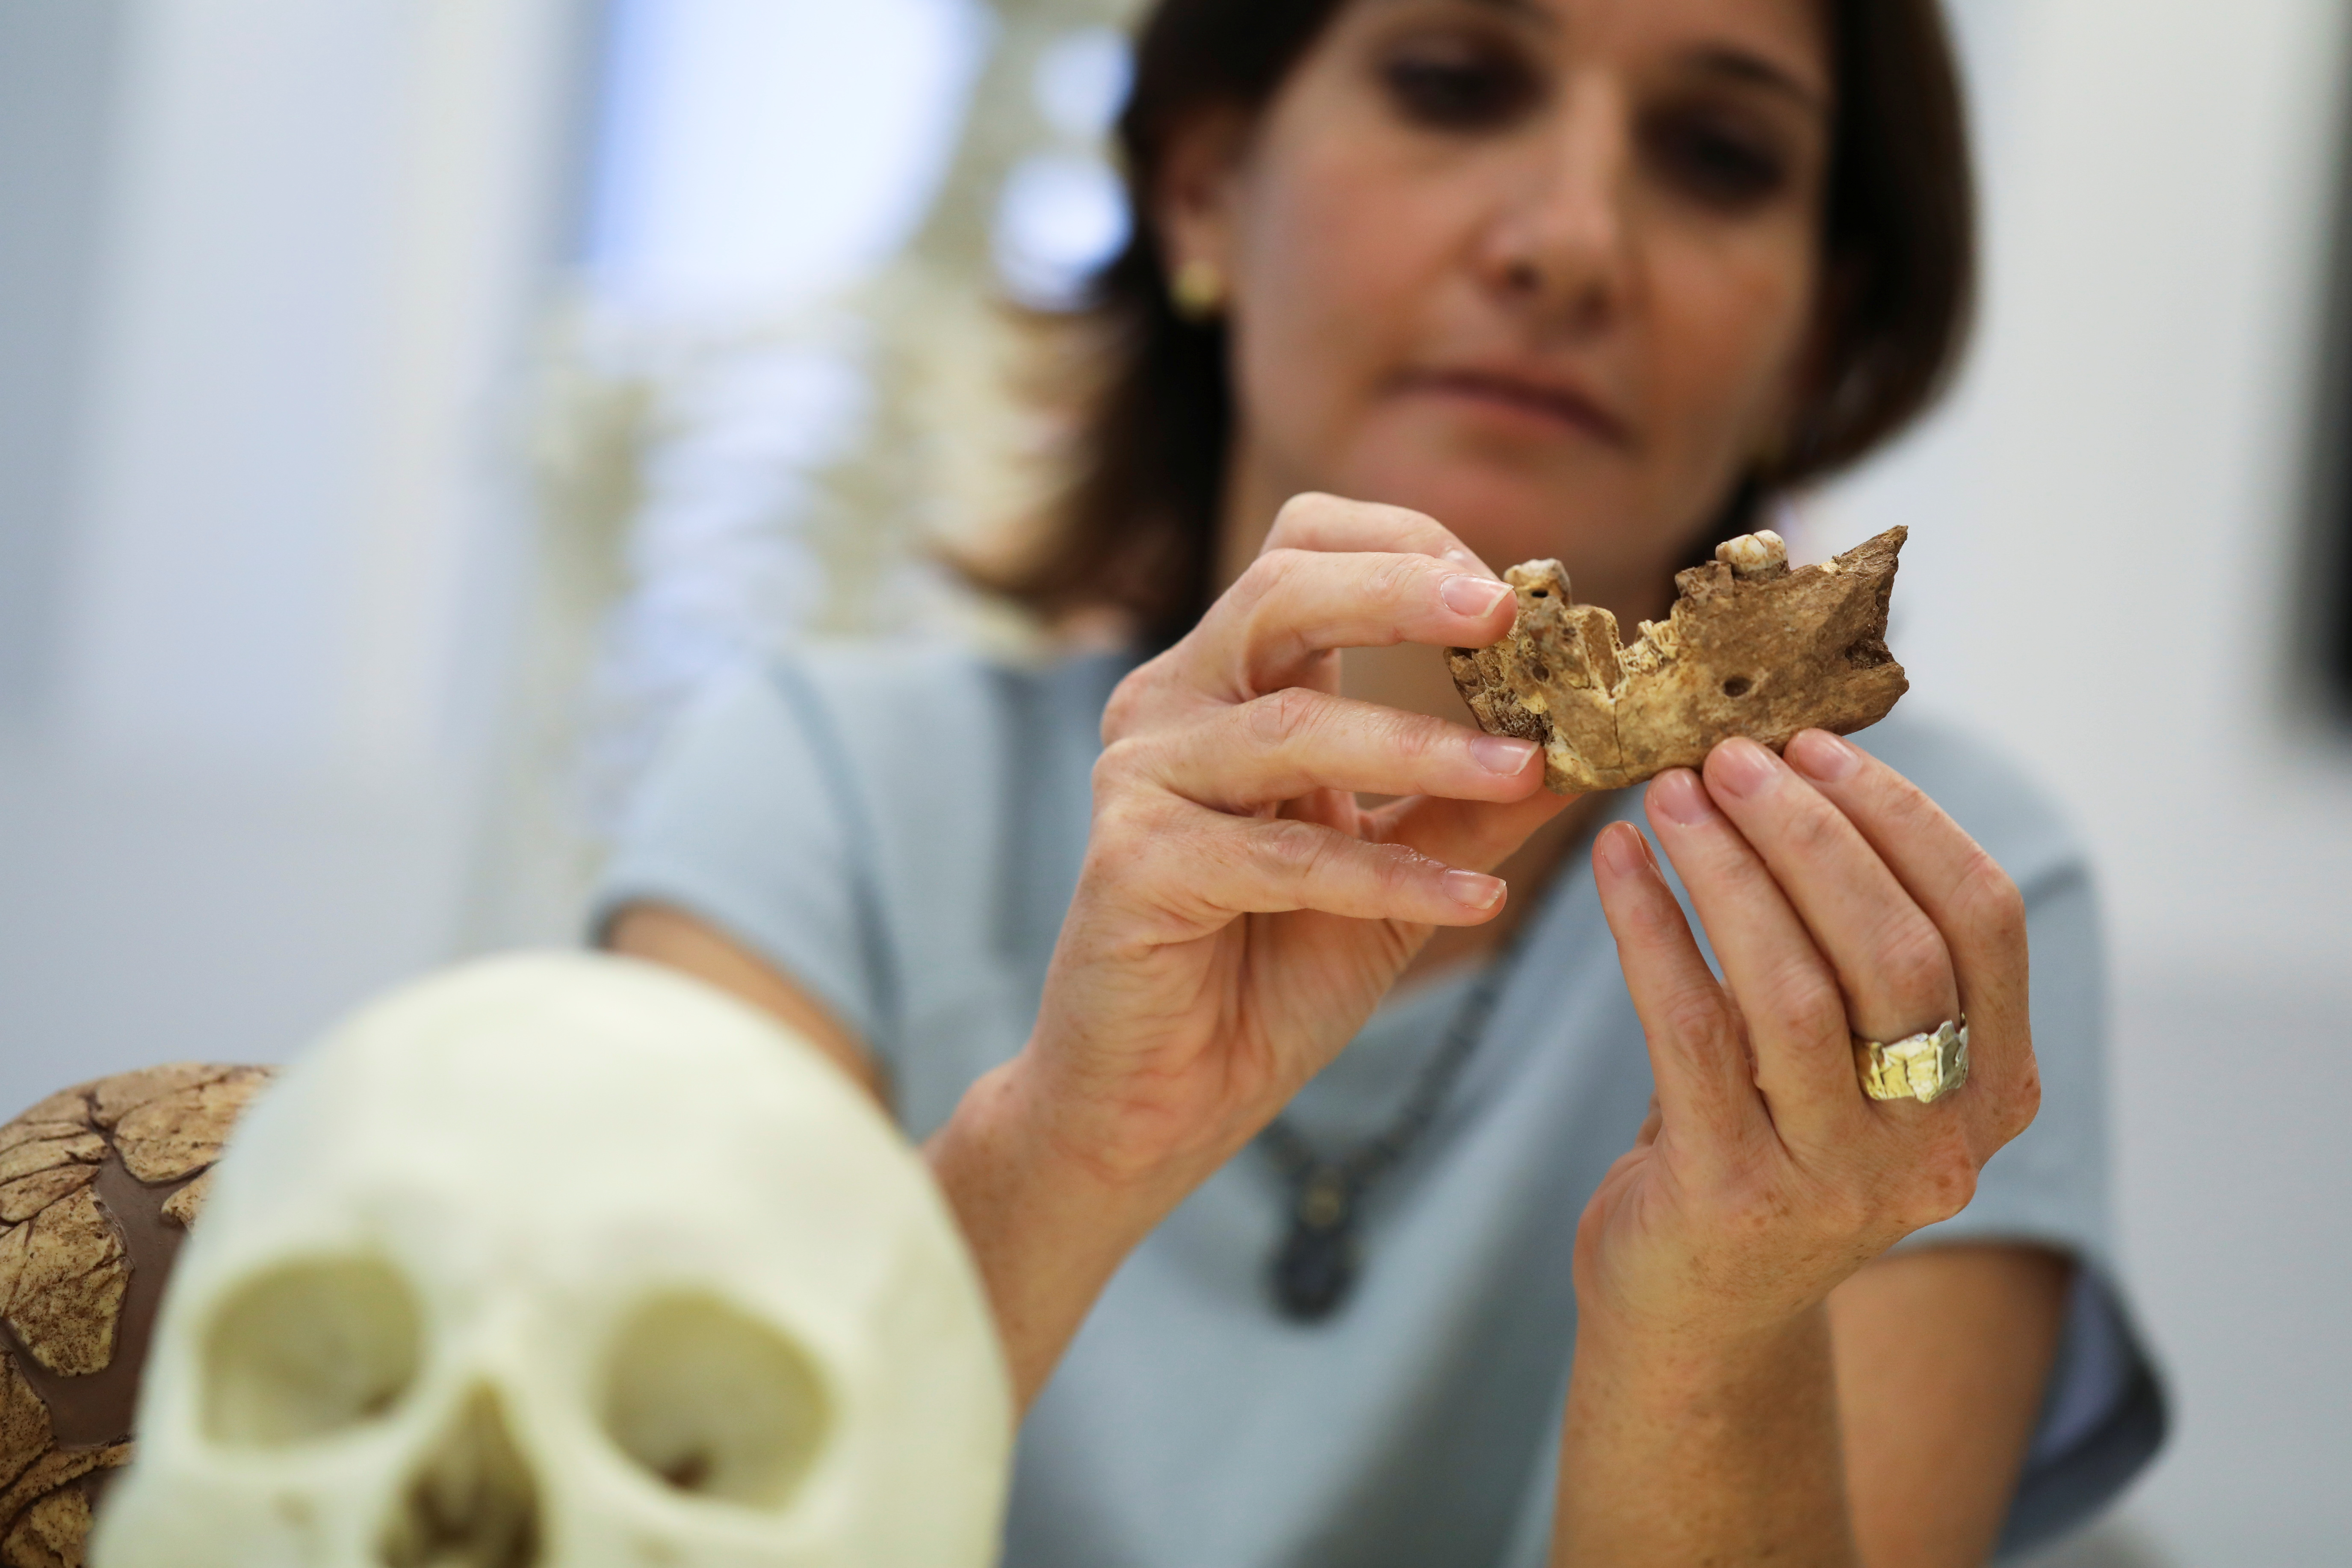 Hila May, a physical anthropologist at the Dan David Center and the Shmunis Institute of Tel Aviv University holds what scientists say is a piece of fossilised bone of a previously unknown kind of early human discovered at the Nesher Ramla site in central Israel, during an interview with Reuters at The Steinhardt Museum of Natural History in Tel Aviv, Israel June 23, 2021. Picture taken June 23, 2021. REUTERS/Ammar Awad